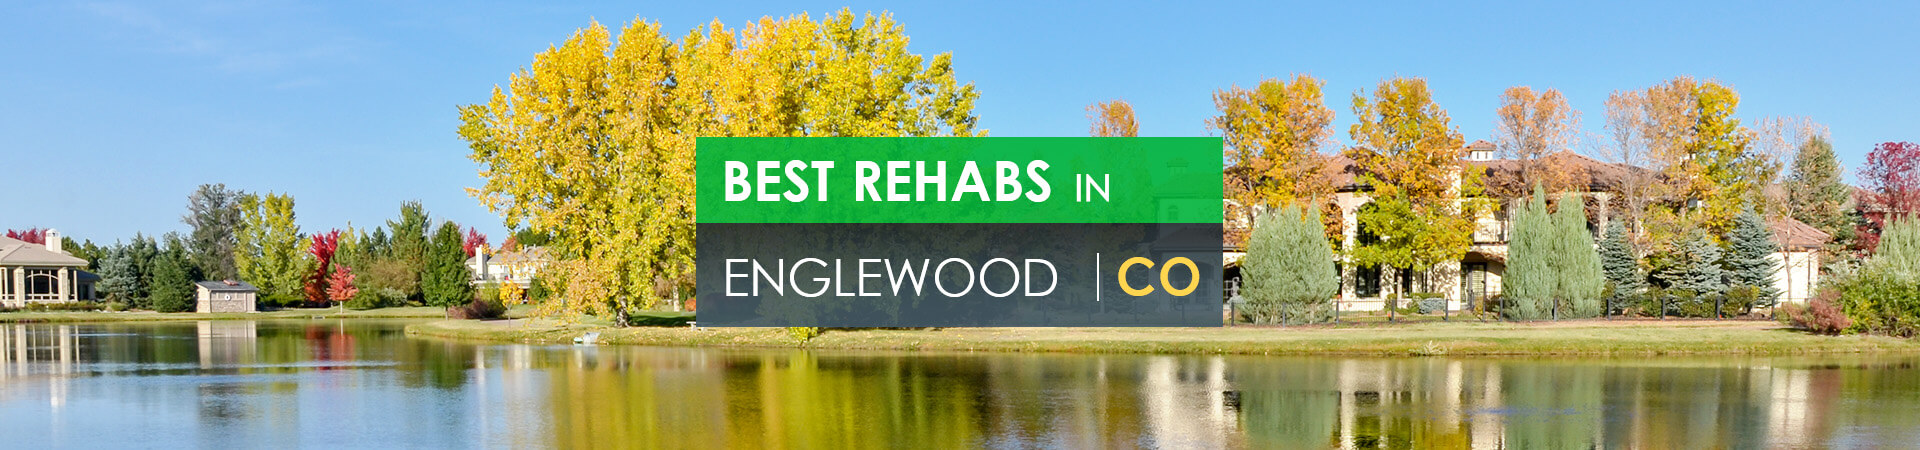 Best rehabs in Englewood, CO